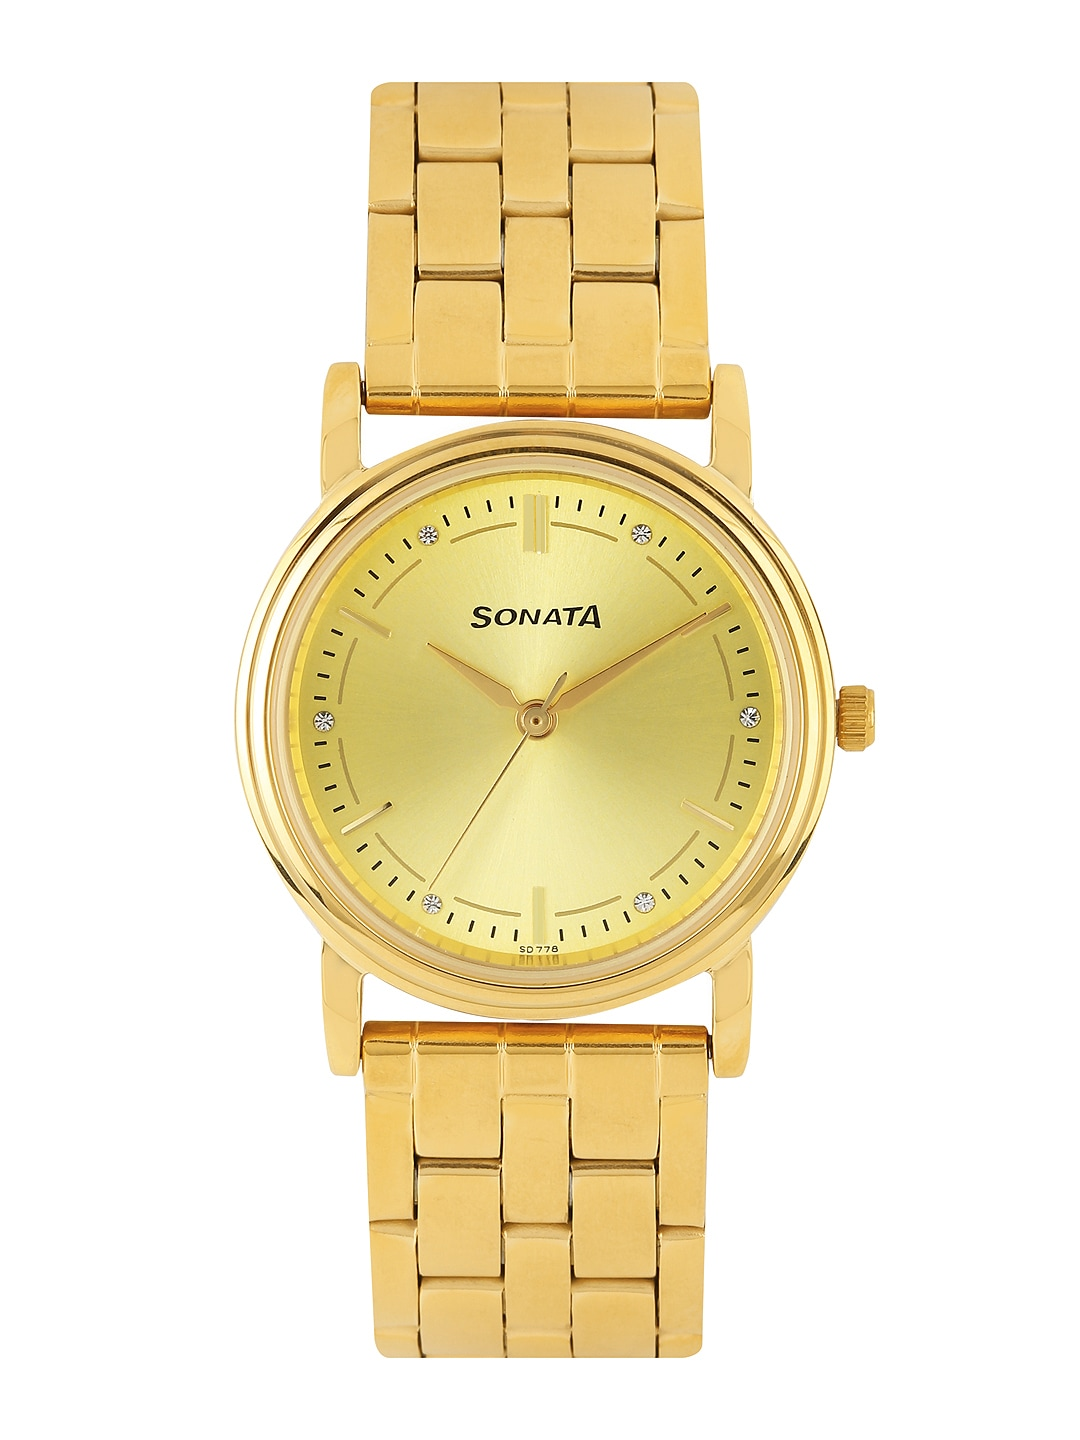 Sonata Men Gold-Toned Dial Watch ND1141YM22